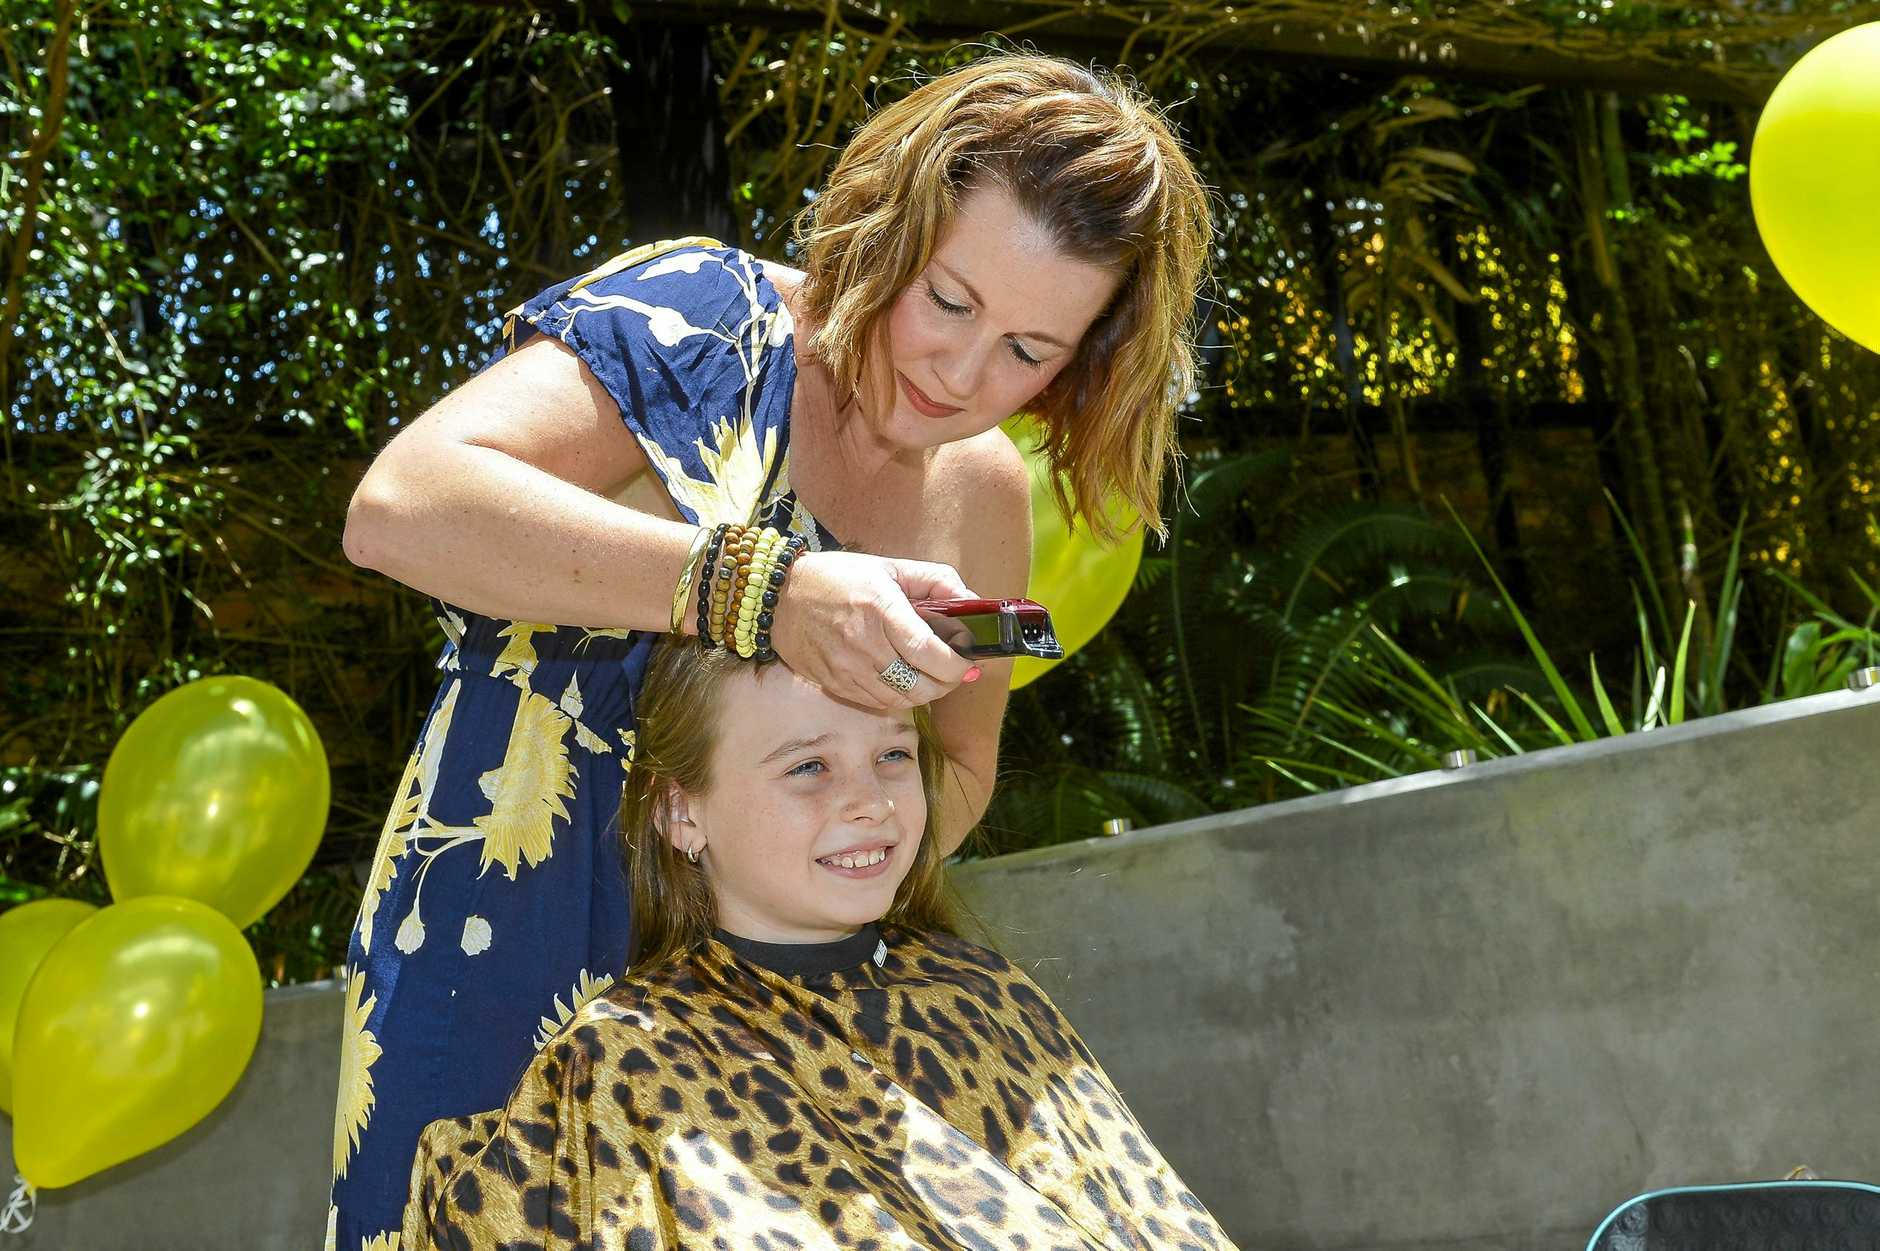 Ashlyn Martin had her head shaved by Karen Whitaker in support of her cousin Lindsay who is diagnosed with a form of aggressive cancer.